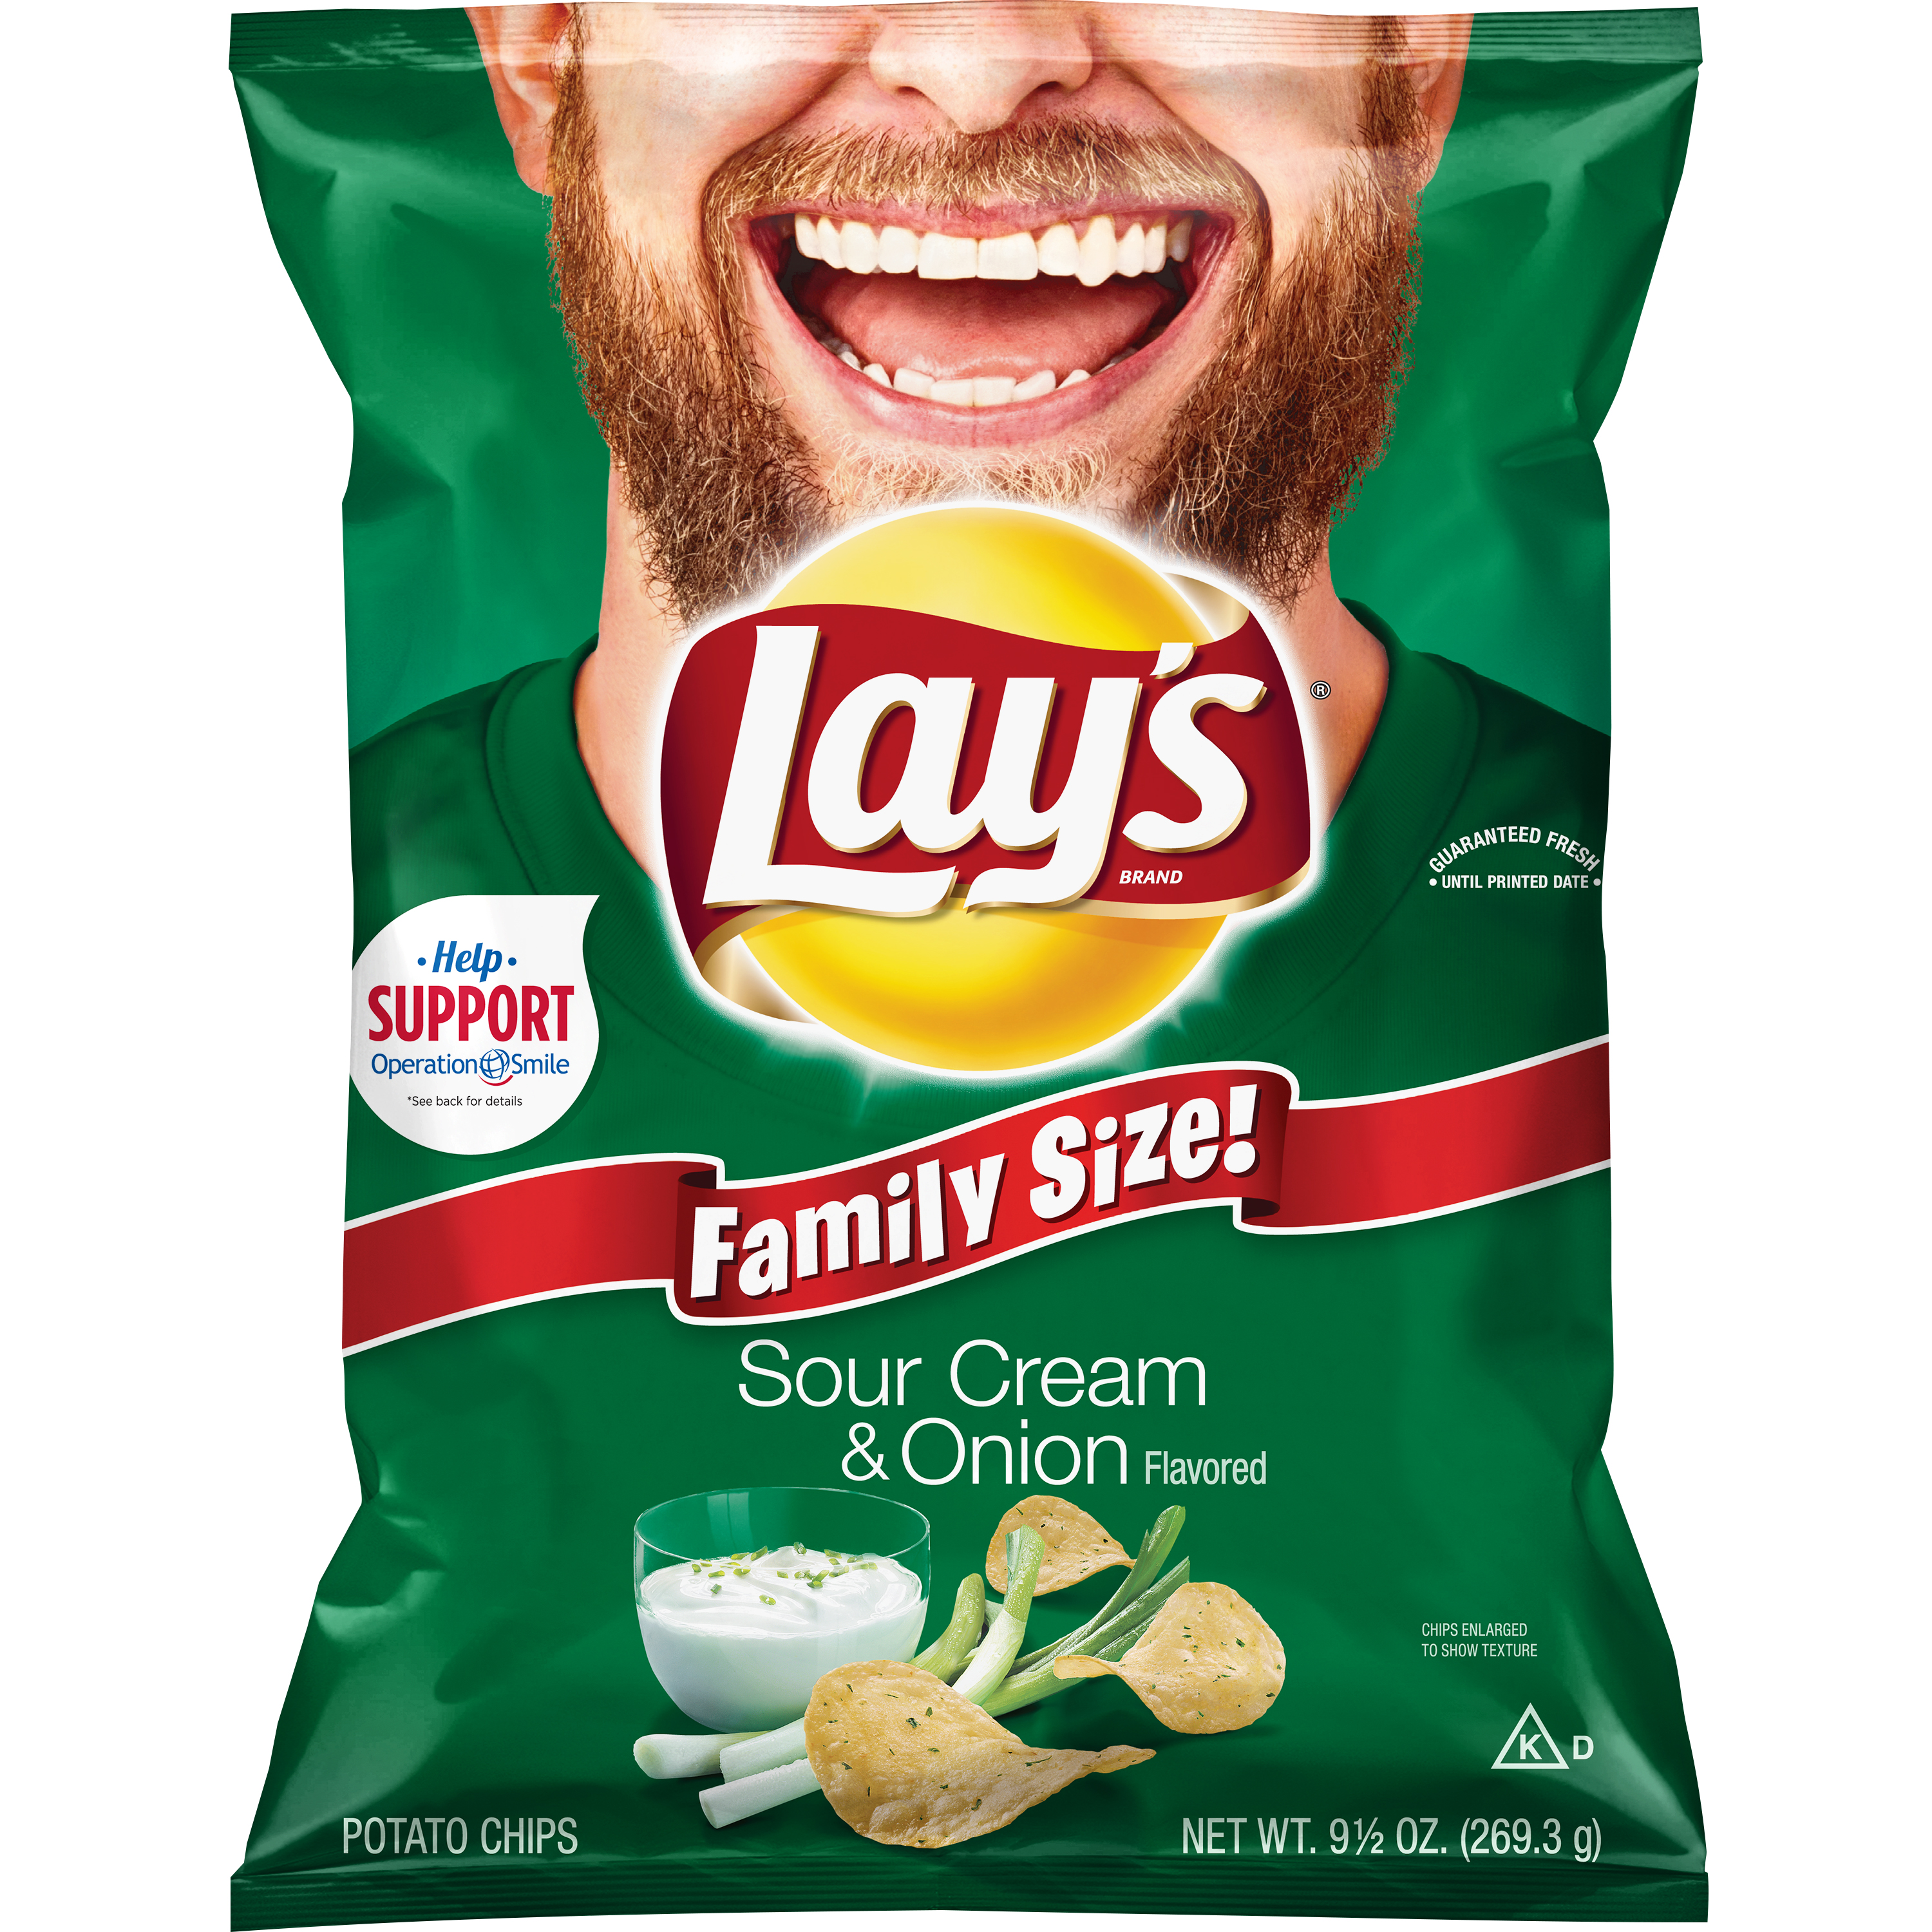 Lay's Sour Cream & Onion Flavored Potato Chips, 9.5 oz. Bag